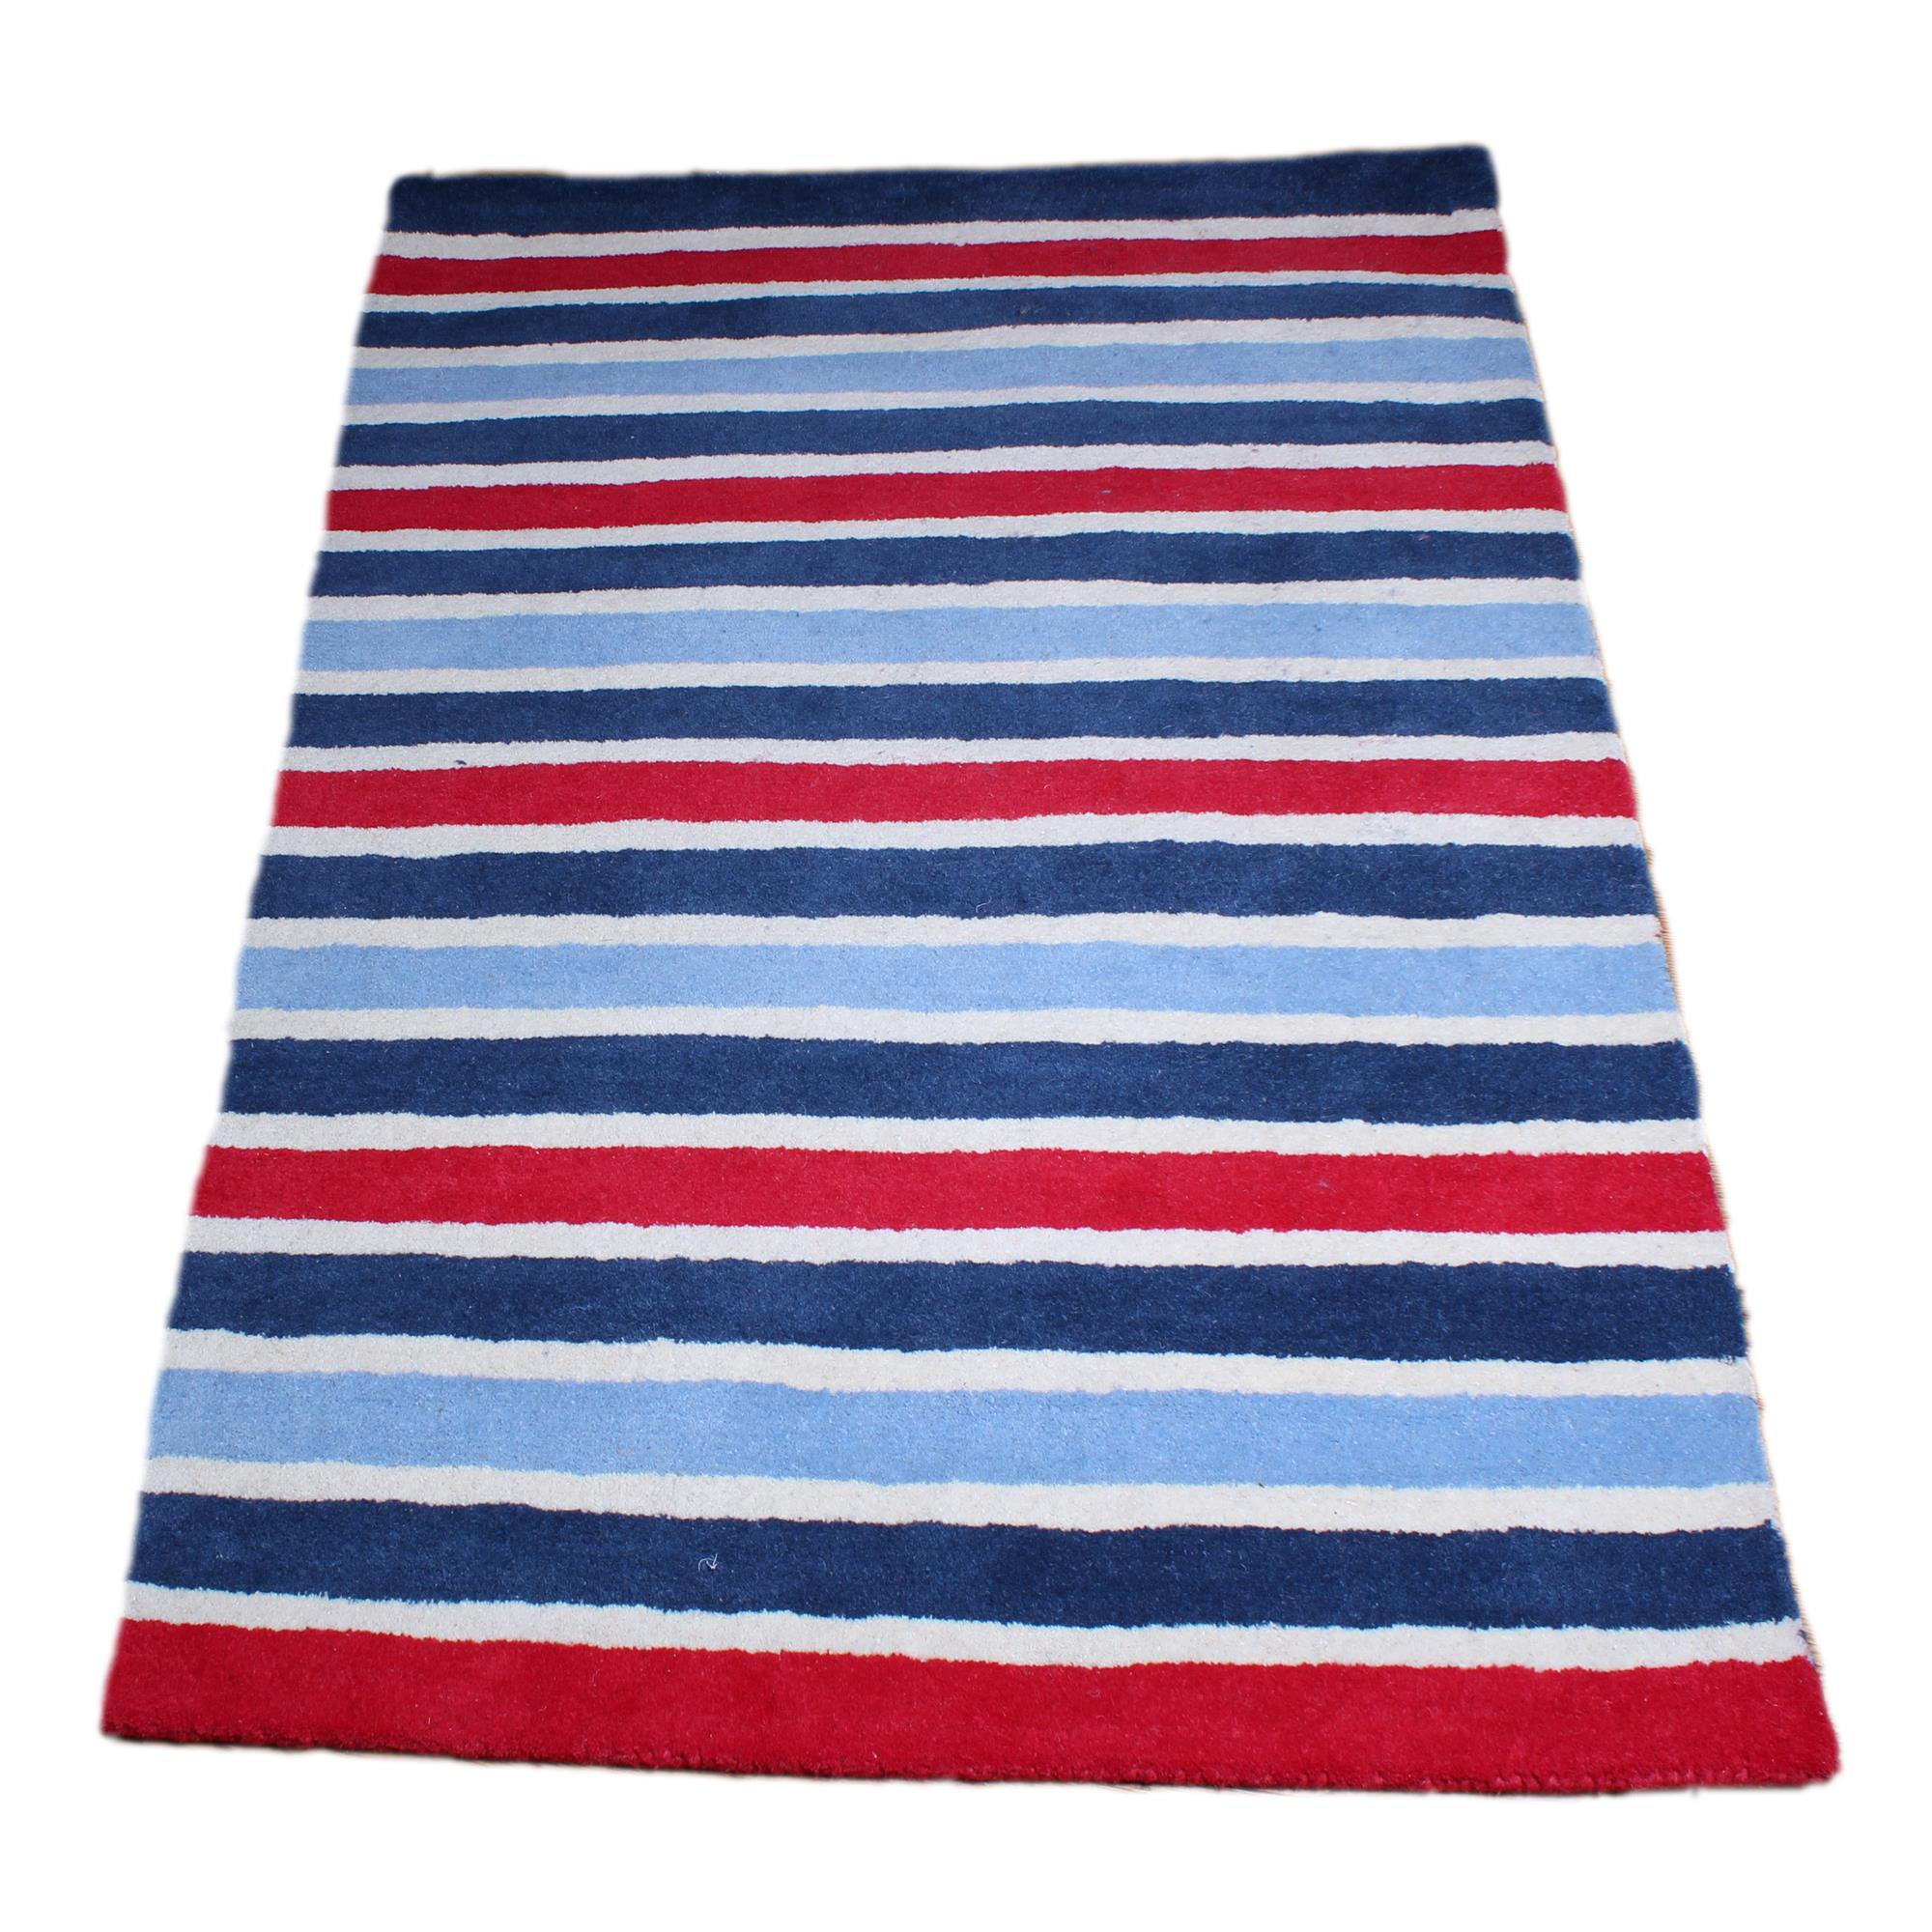 Wicker crib for sale durban - New Boys Lucas Striped Blue And Red Pure Wool Rug For Kids Bedroom Playroom Decor Hand Tufted